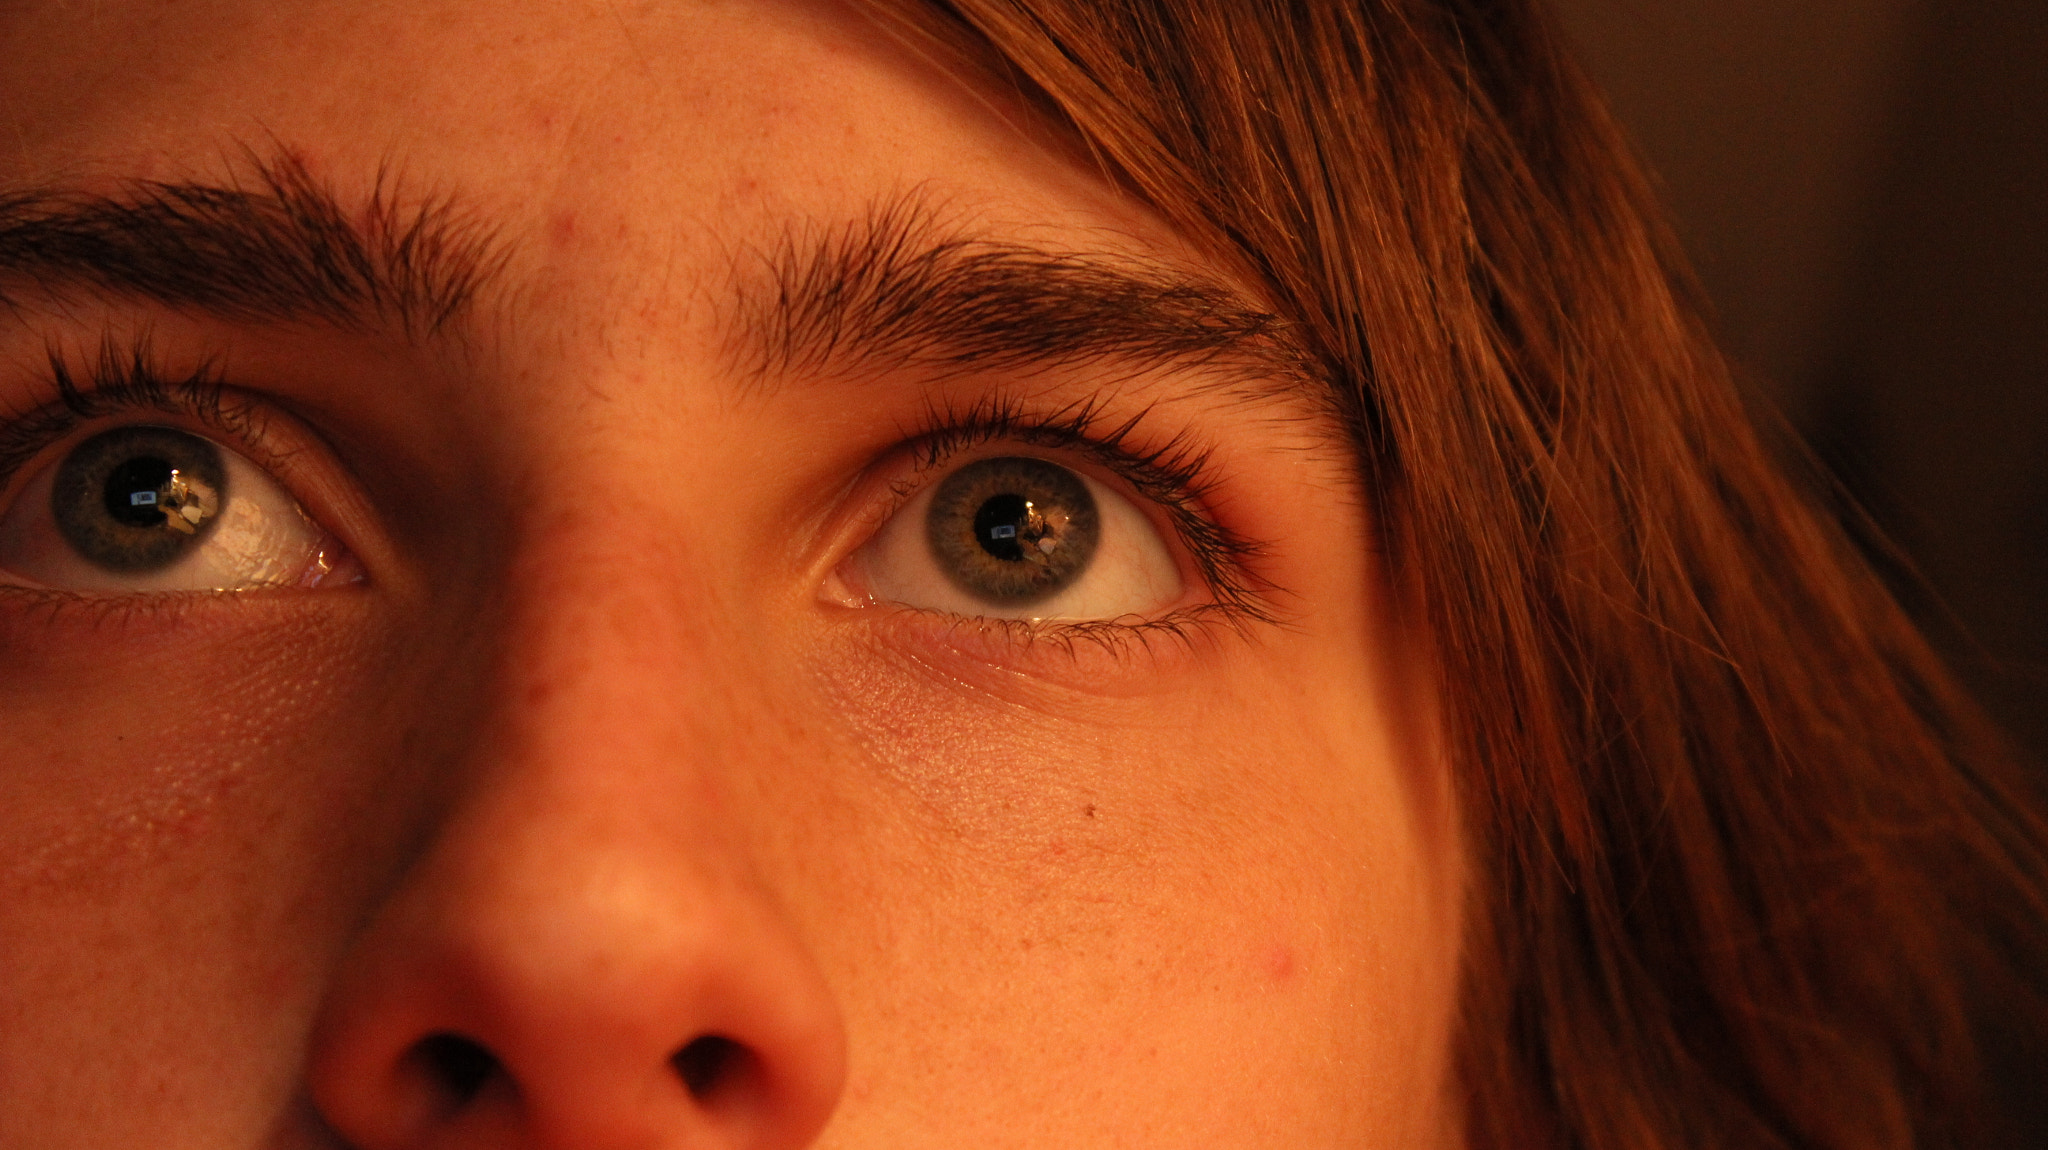 Photograph Eyes by Michael Labelle on 500px